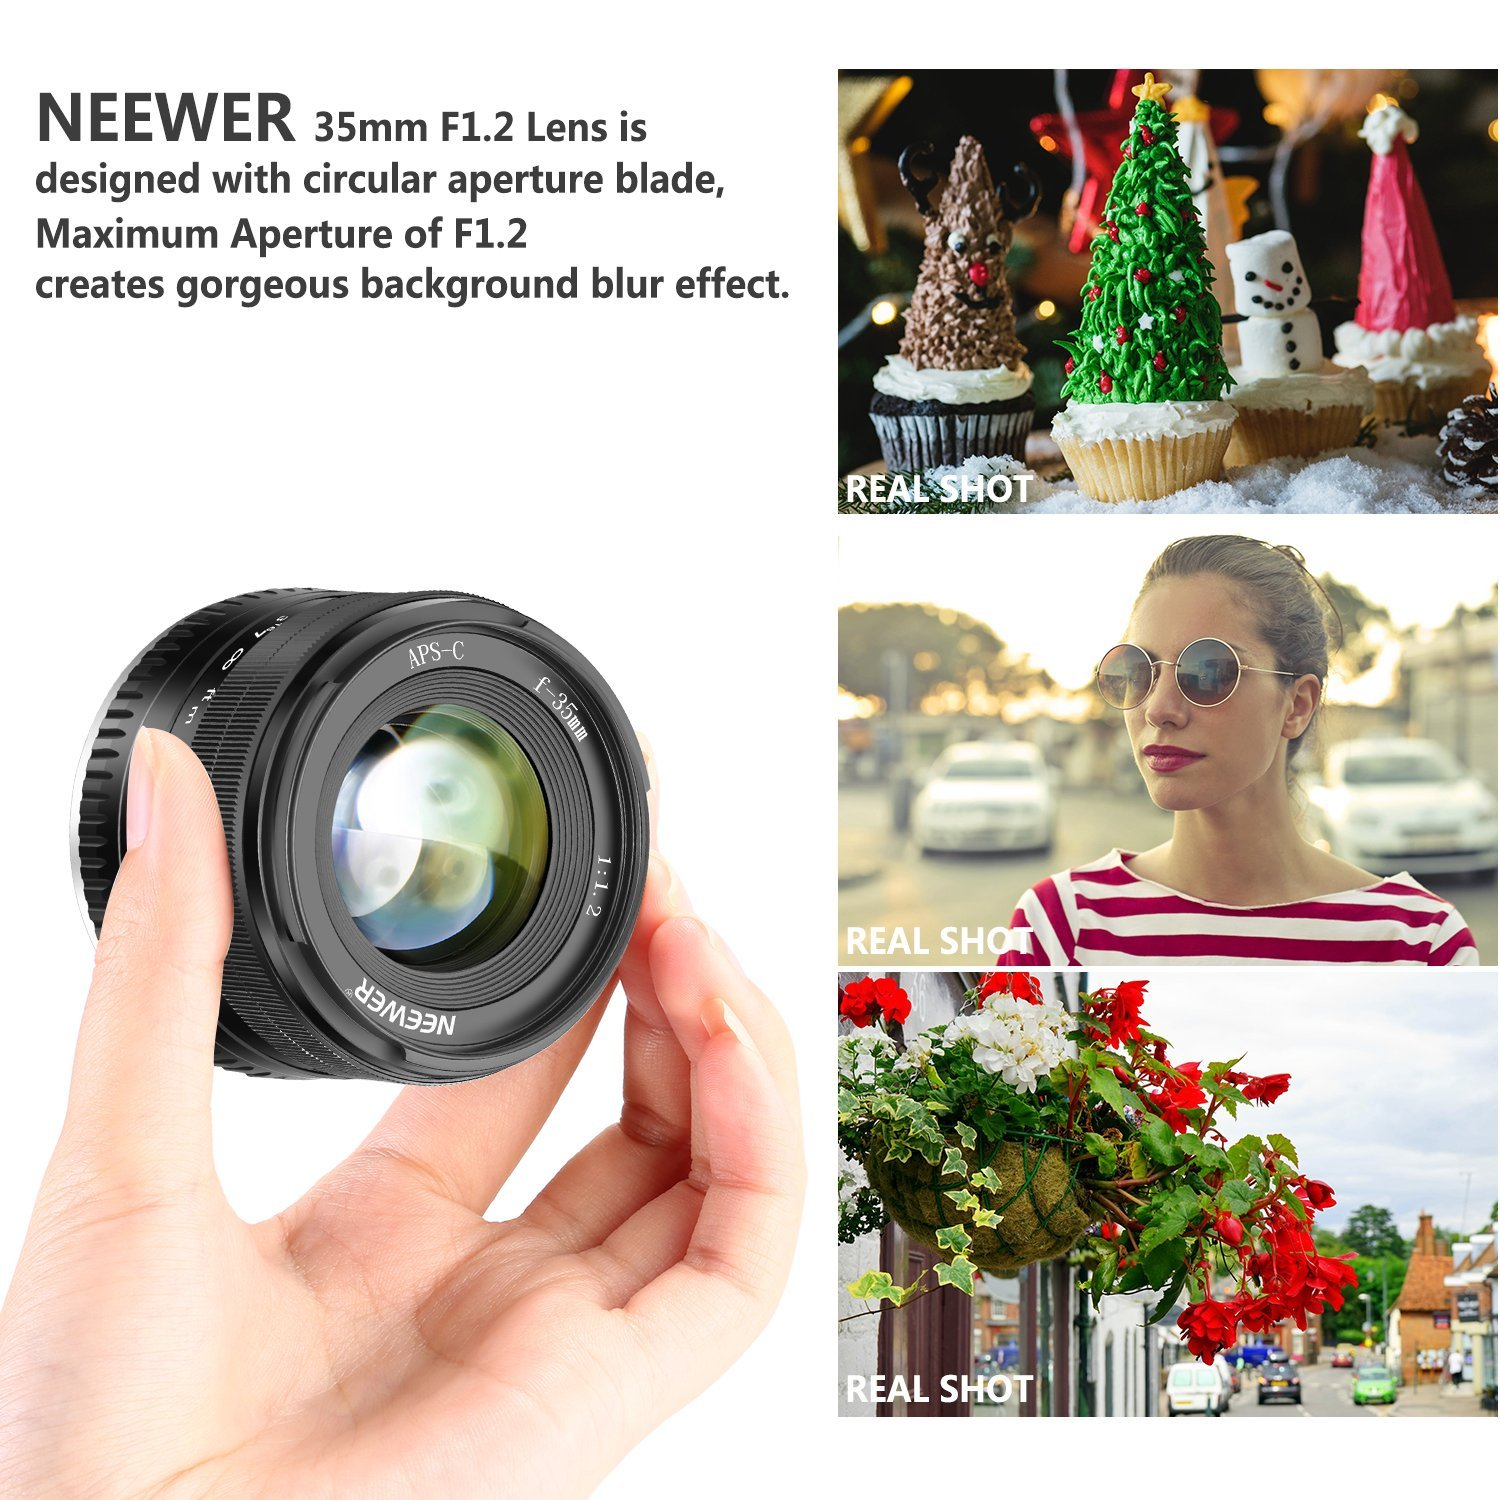 Fuji X Wedding Photography: New: Neewer 35mm F/1.2 Mirrorless Lens For Fuji X And Sony